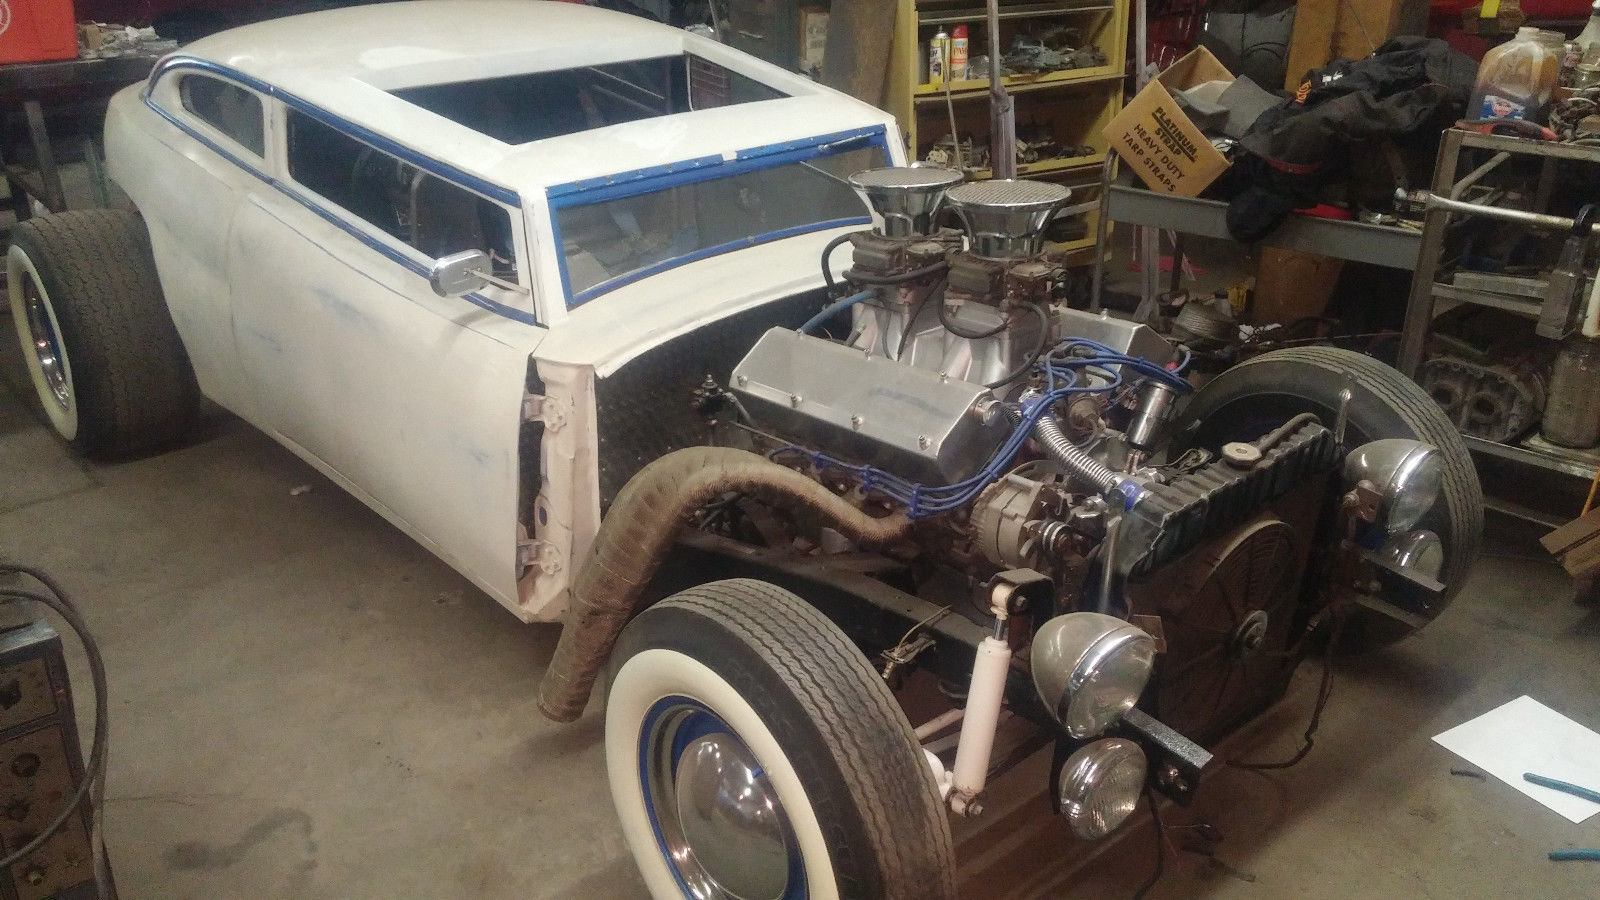 This 1947 Ford Rat Rod Is A One-Off, One Of A Kind Runner…But Can You Drive It?